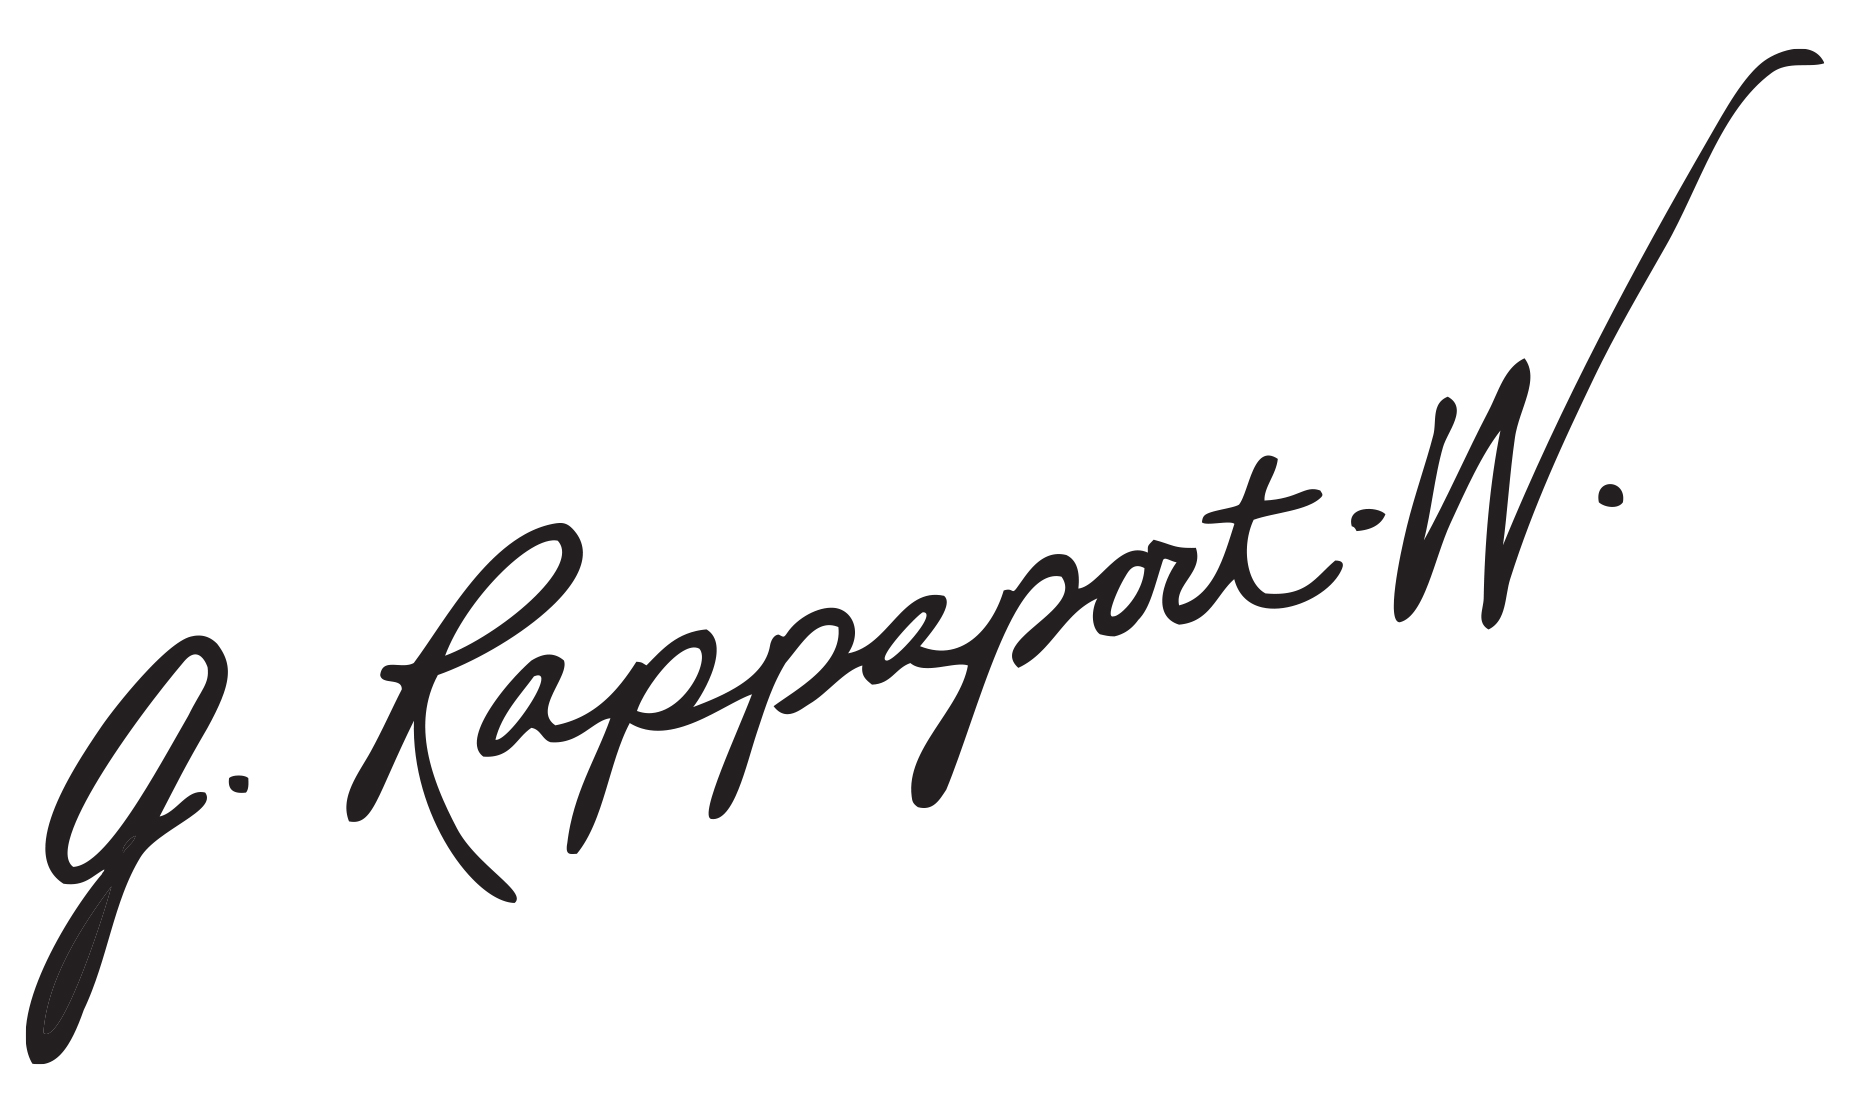 Gayle Rappaport - Weiland's Signature